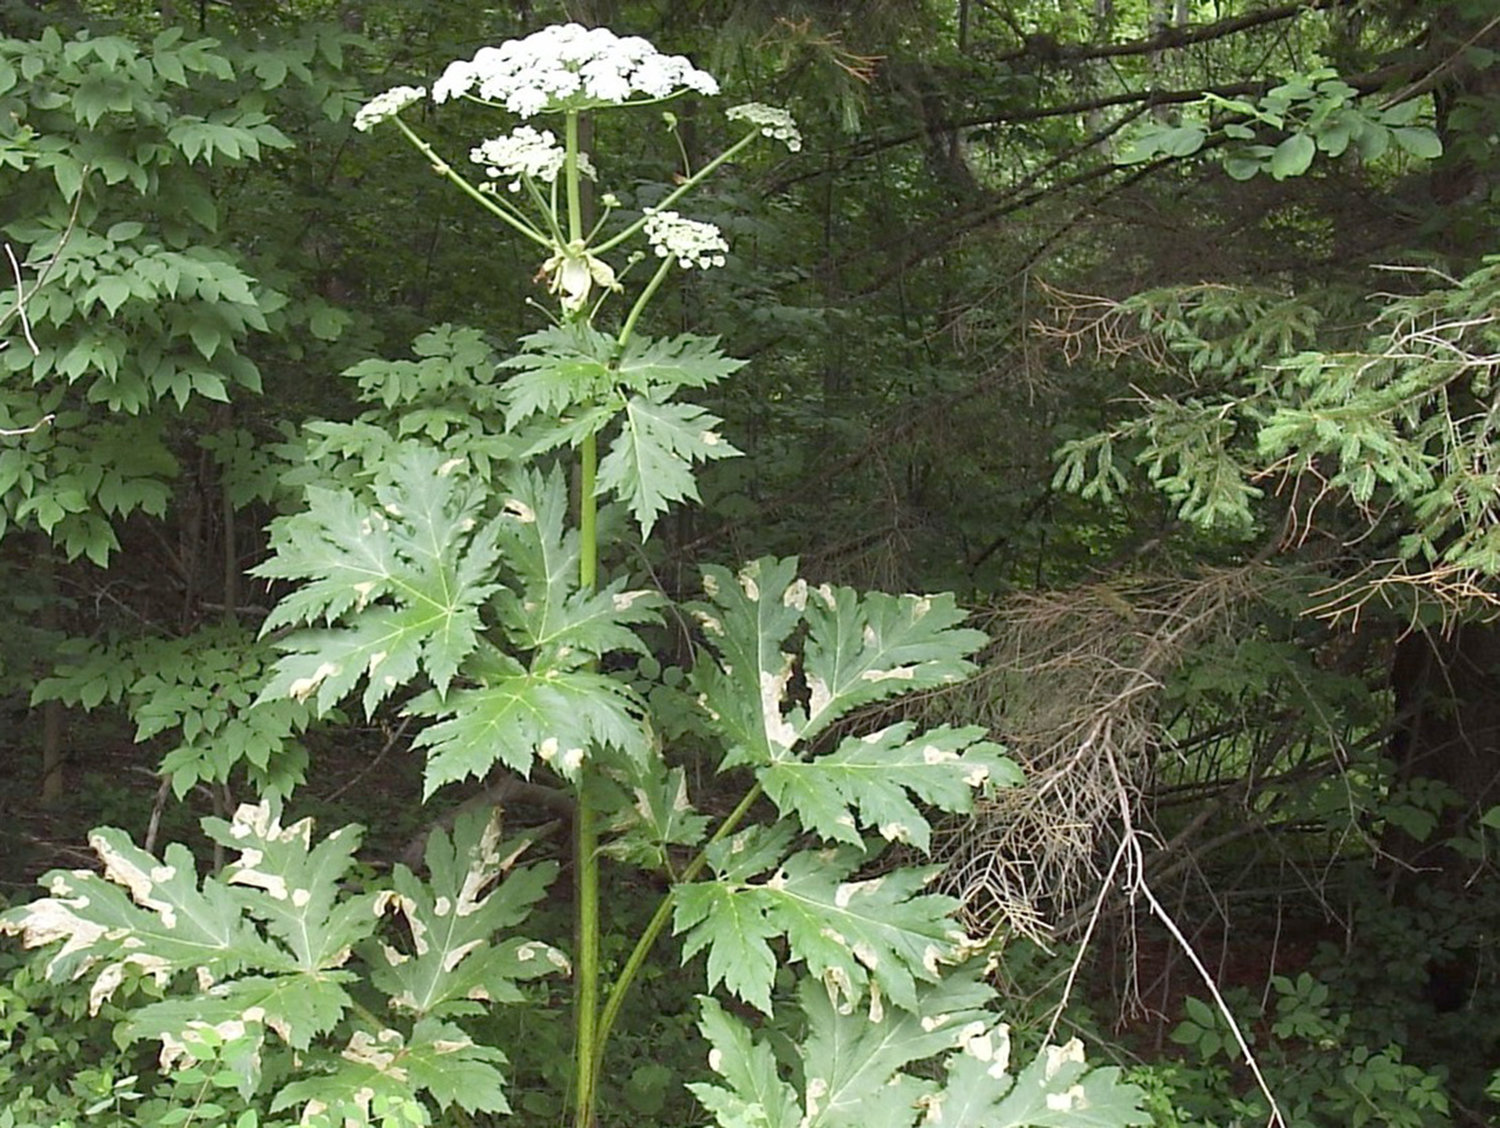 PROBLEM PLANT — Giant hogweed sap, when combined with sunlight, can cause serious burns and blisters and eventual scarring.